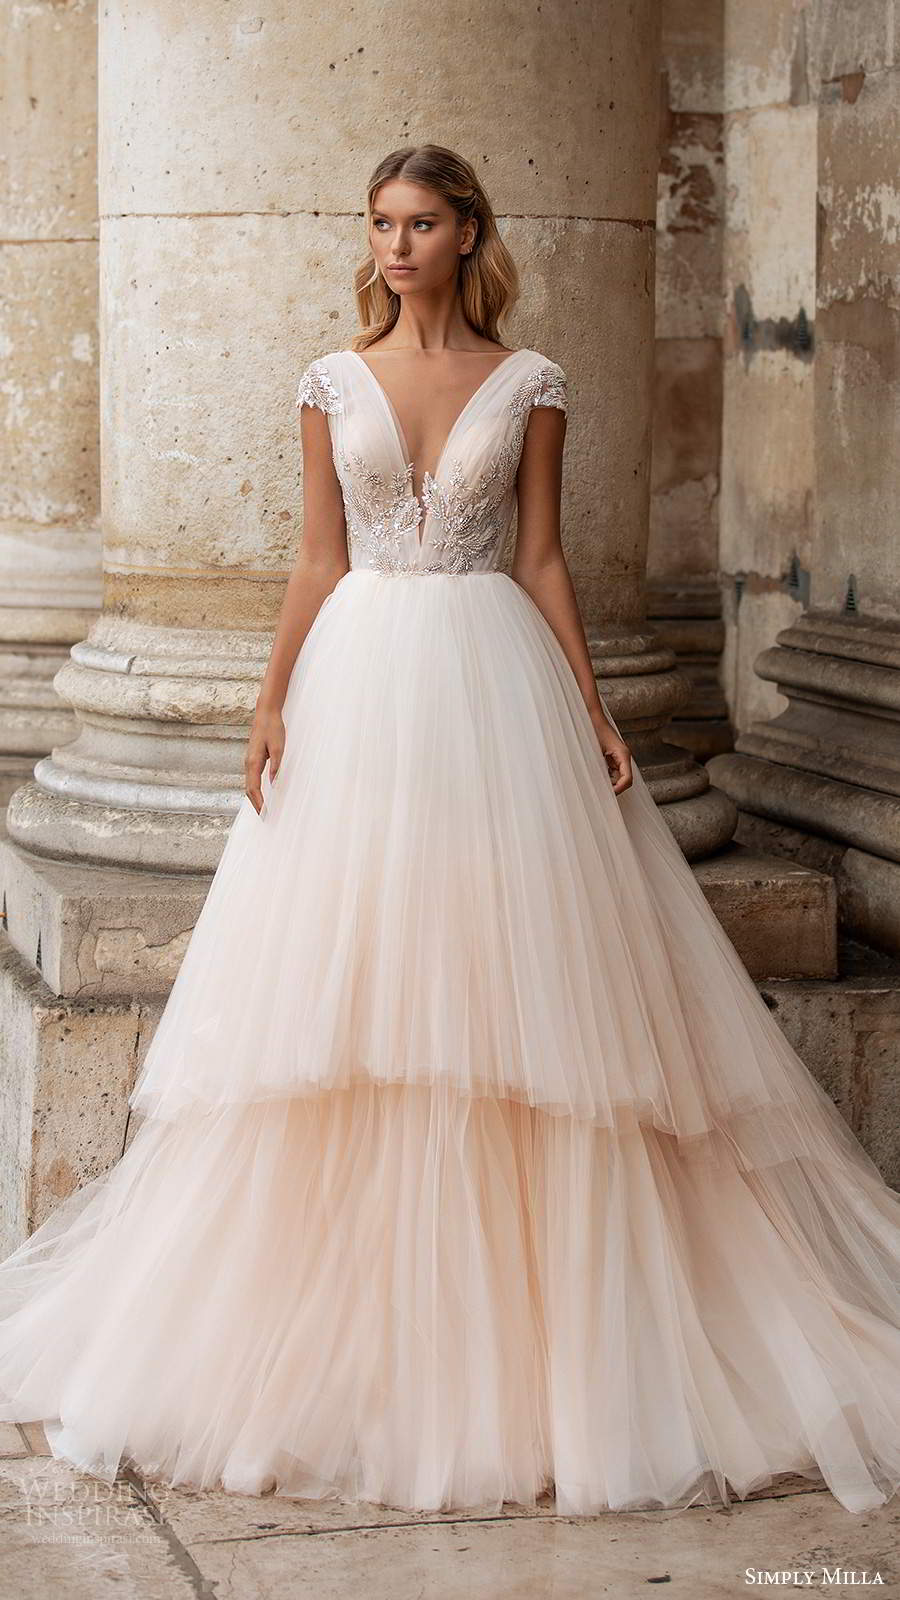 simply milla nova 2020 bridal cap sleeves plunging v neckline embellished bodice a line ball gown blush wedding dress chapel train (3) mv